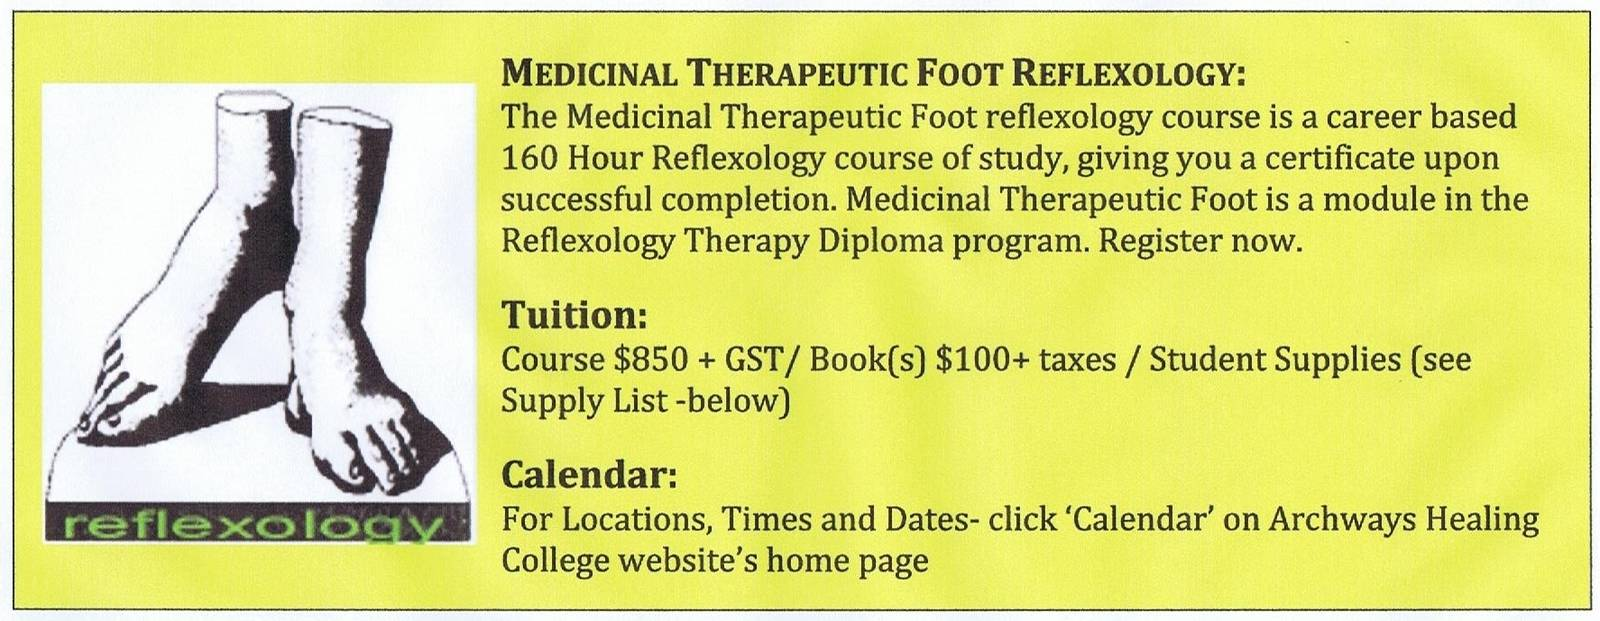 Information regarding Medicinal Therapeutic Foot Reflexology from Archways massage school in Alberta